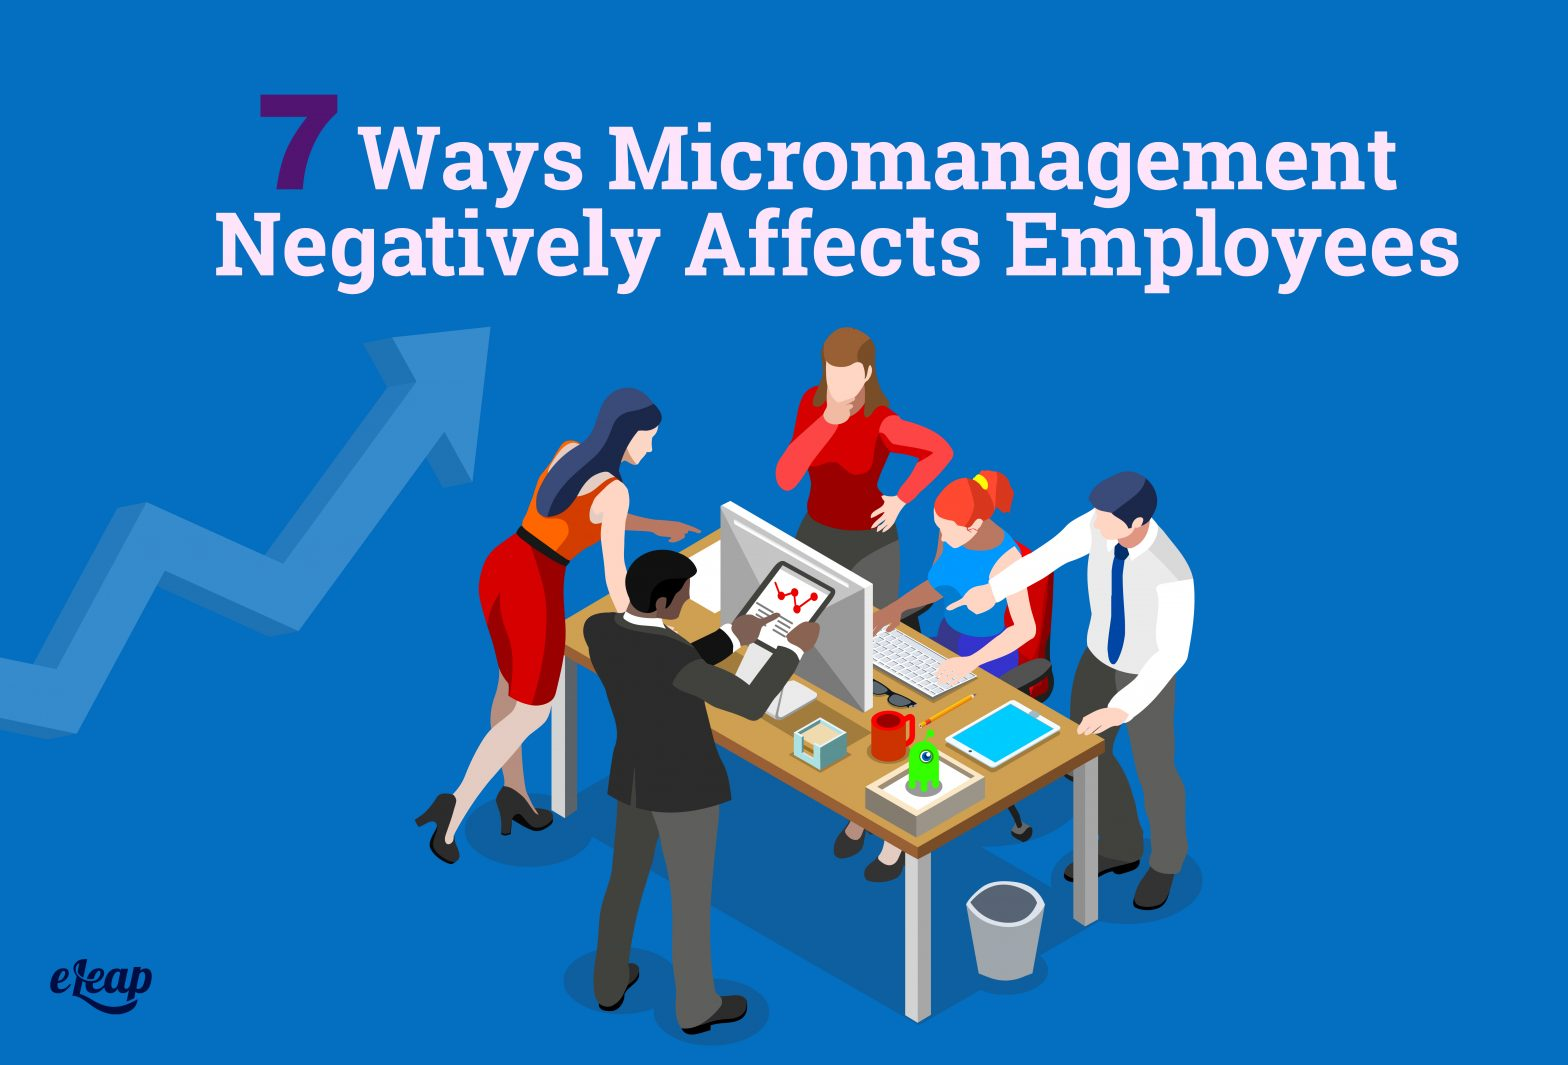 7 Ways Micromanagement Negatively Affects Employees